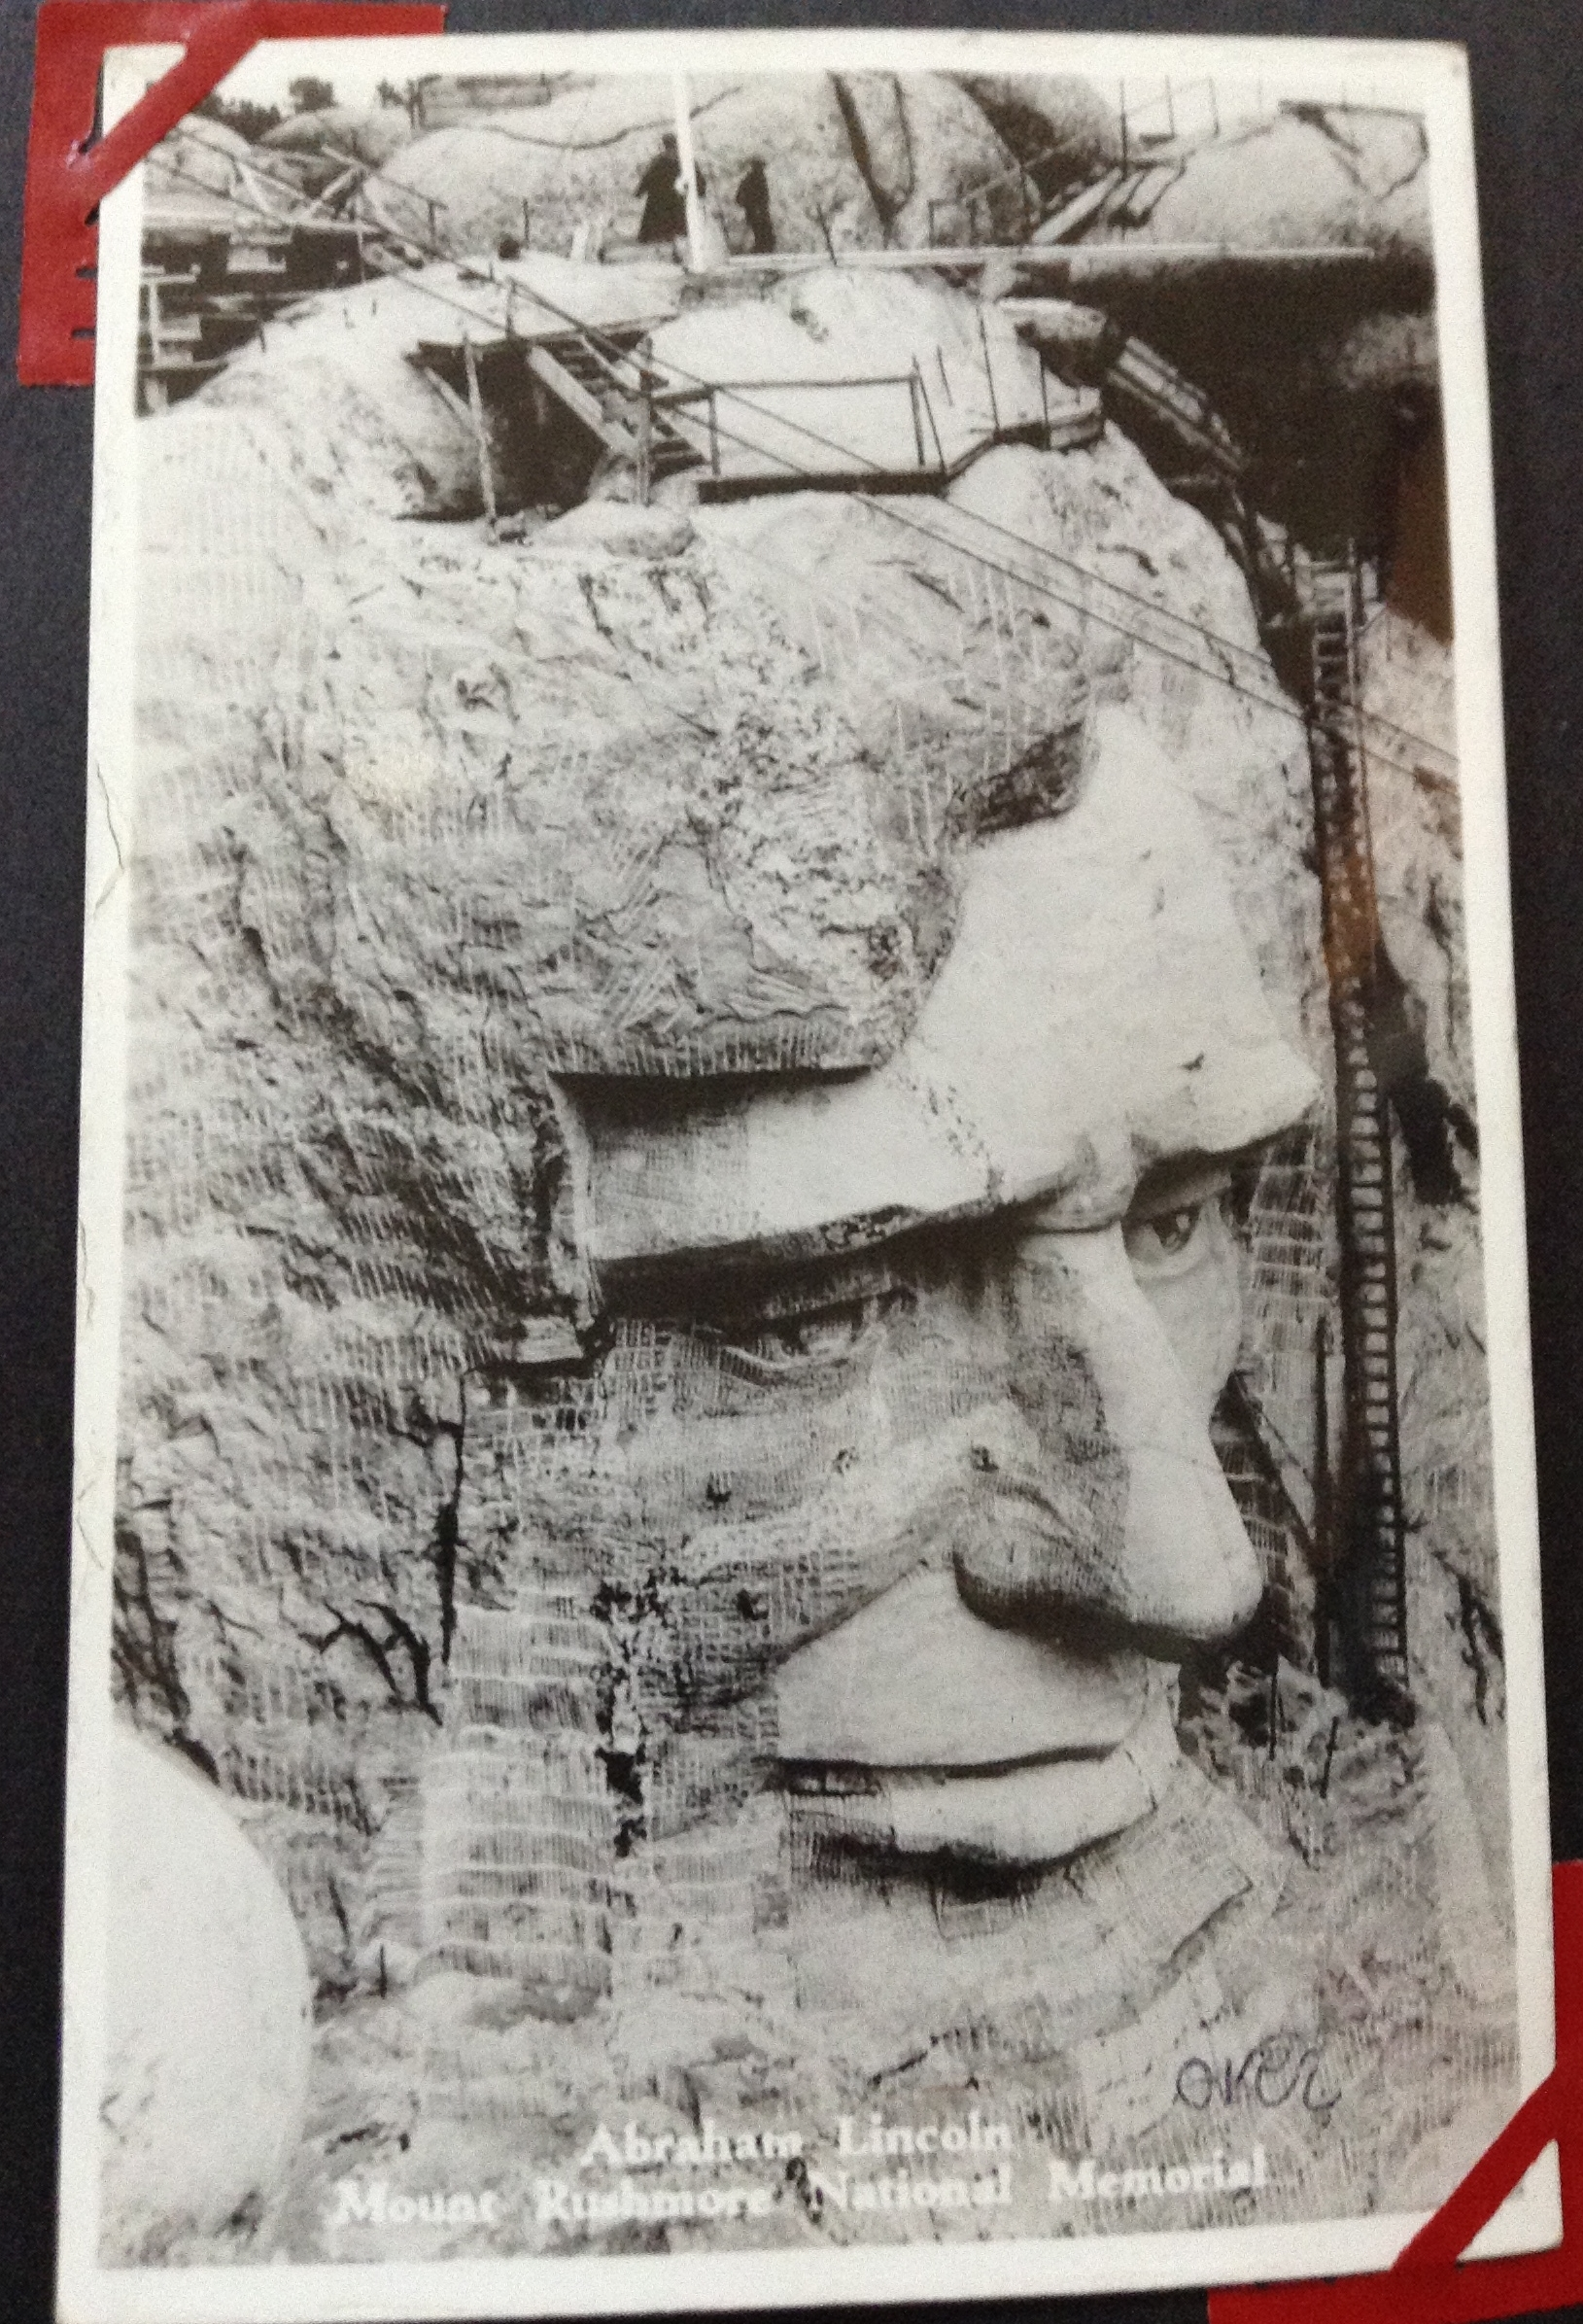 Mt. Rushmore National Memorial construction began in 1927. This photo post card is from Jim Carrig's family photo album.